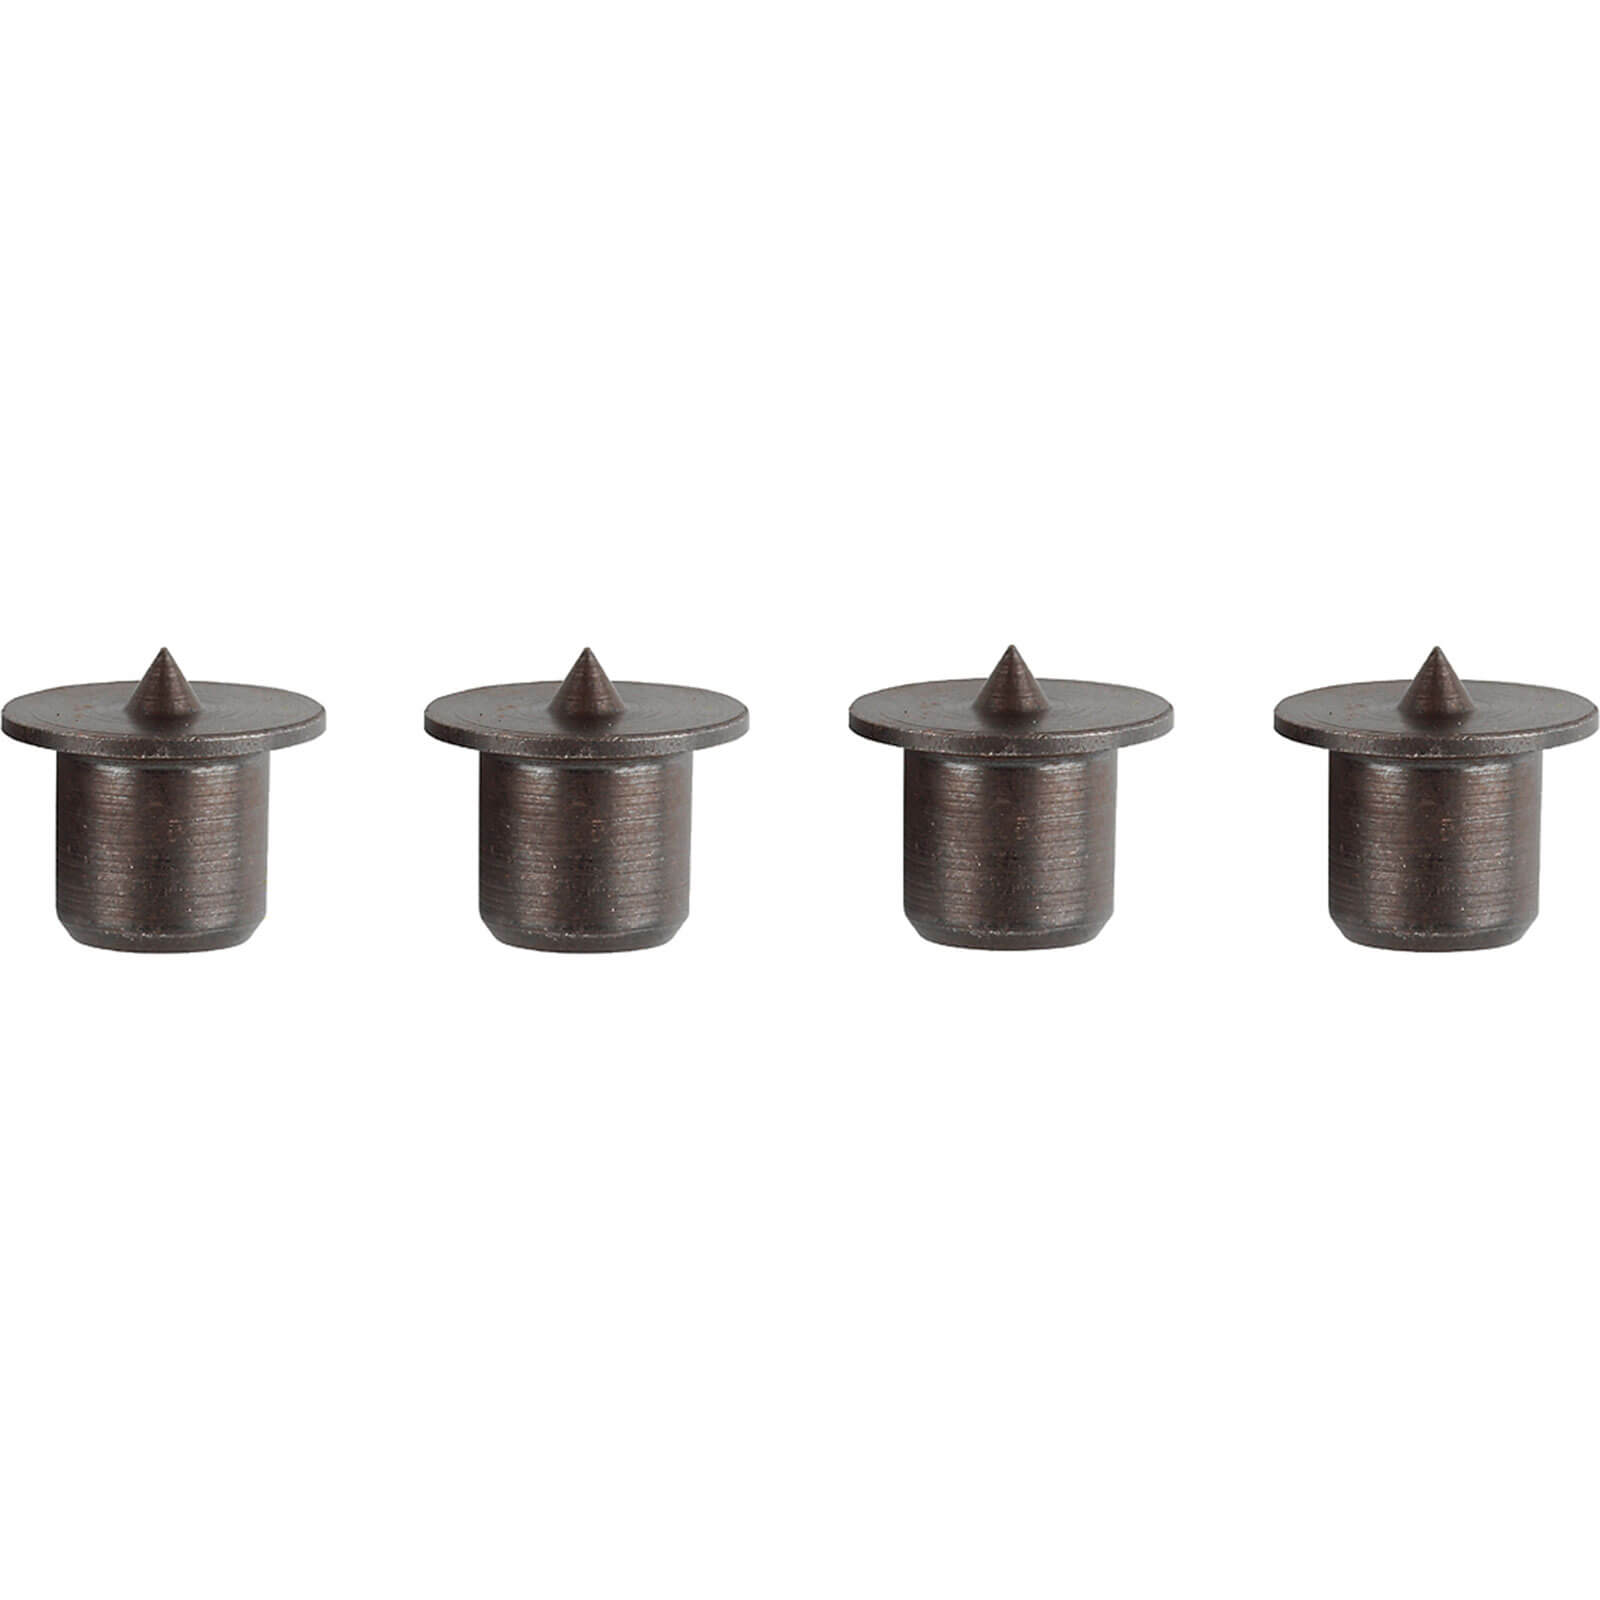 Image of KWB Dowel Marking Points 8mm Pack of 4